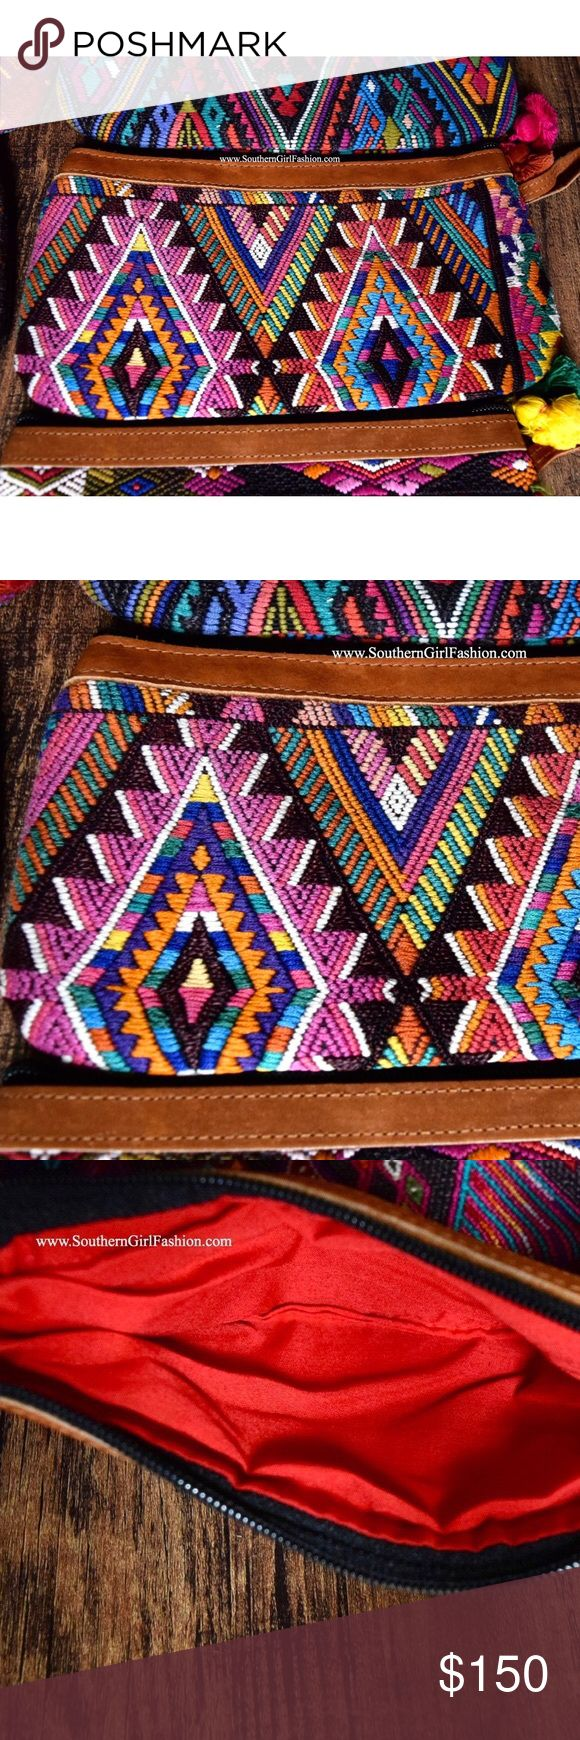 TRIBAL BAG Bohemian Embroidered Clutch Wristlet One Size. New in packaging.    • Beautiful tribal inspired wristlet featuring ethnic embroidered patchwork detailing throughout & tassel accent on zipper.  • Full zip closure.  • Leather detailing at top & wrist strap.  • Hand-made.  • Inside is fully lined.  • Note: this listing is for the bag shown in photo(s) 1, 2 and 3.  • Contin. below.   {Southern Girl Fashion - Closet Policy}   ✔Bundle discount: 20% off 2+ items.   ✔️ Items are priced to…